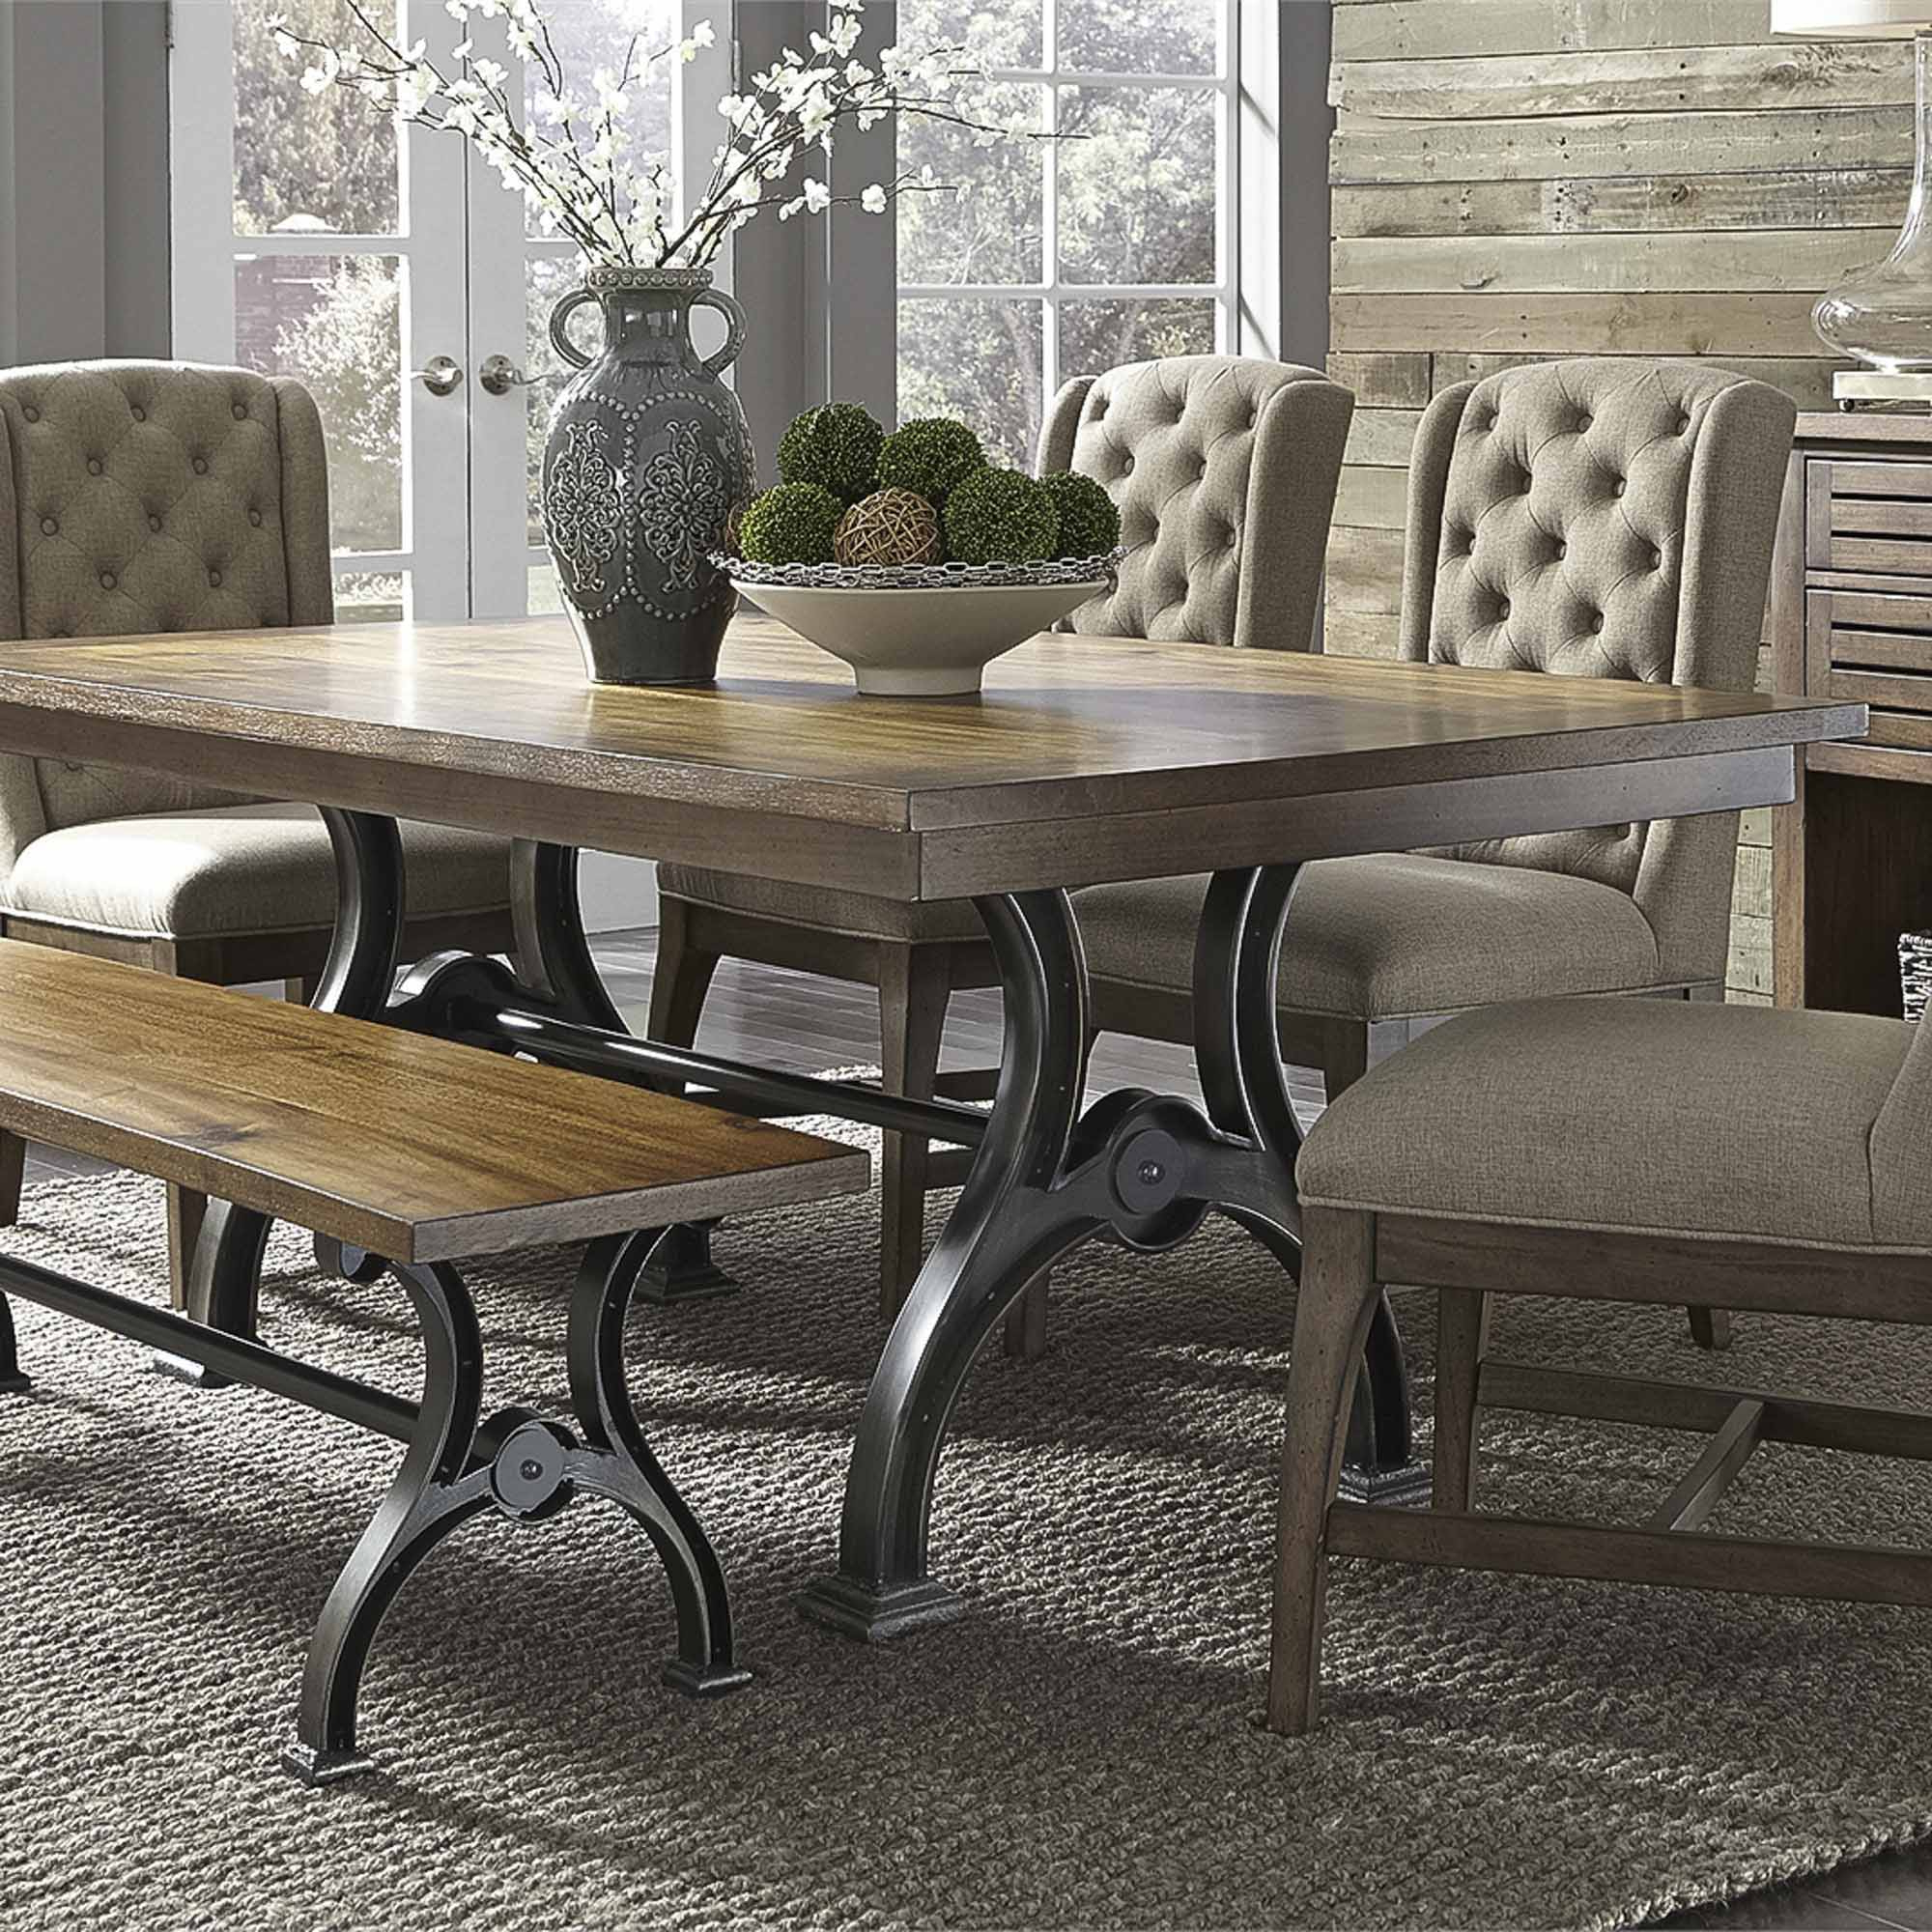 Most Recently Released Springfield 3 Piece Dining Sets Within Dining Room Sets, Dining Room Furniture (View 10 of 20)